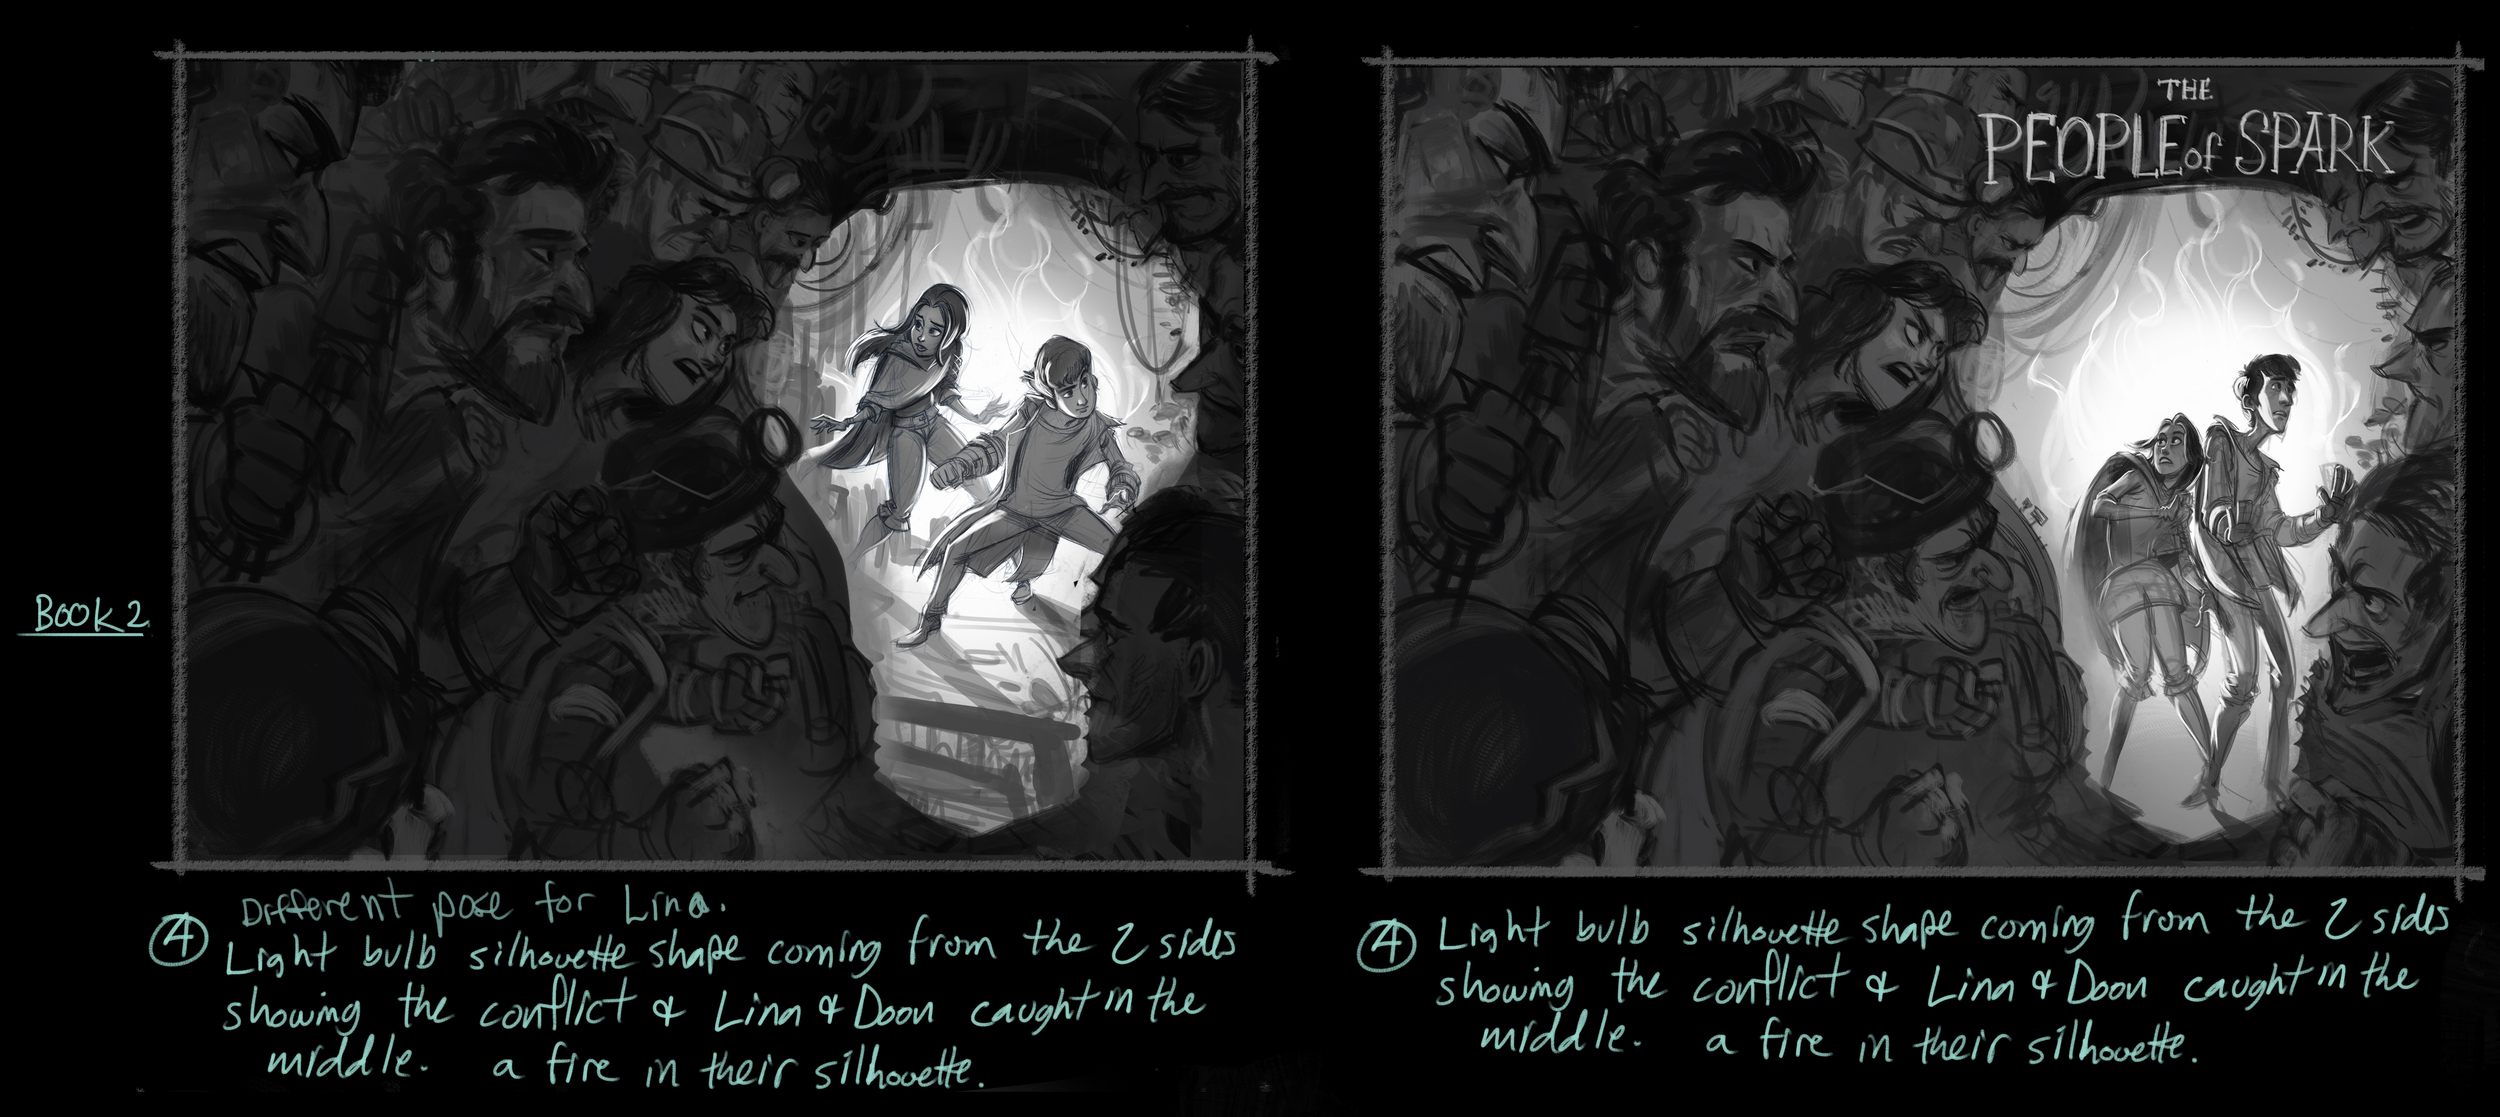 More people of Sparks roughs showing the conflict. I'm glad I didn't have to paint all of those people...